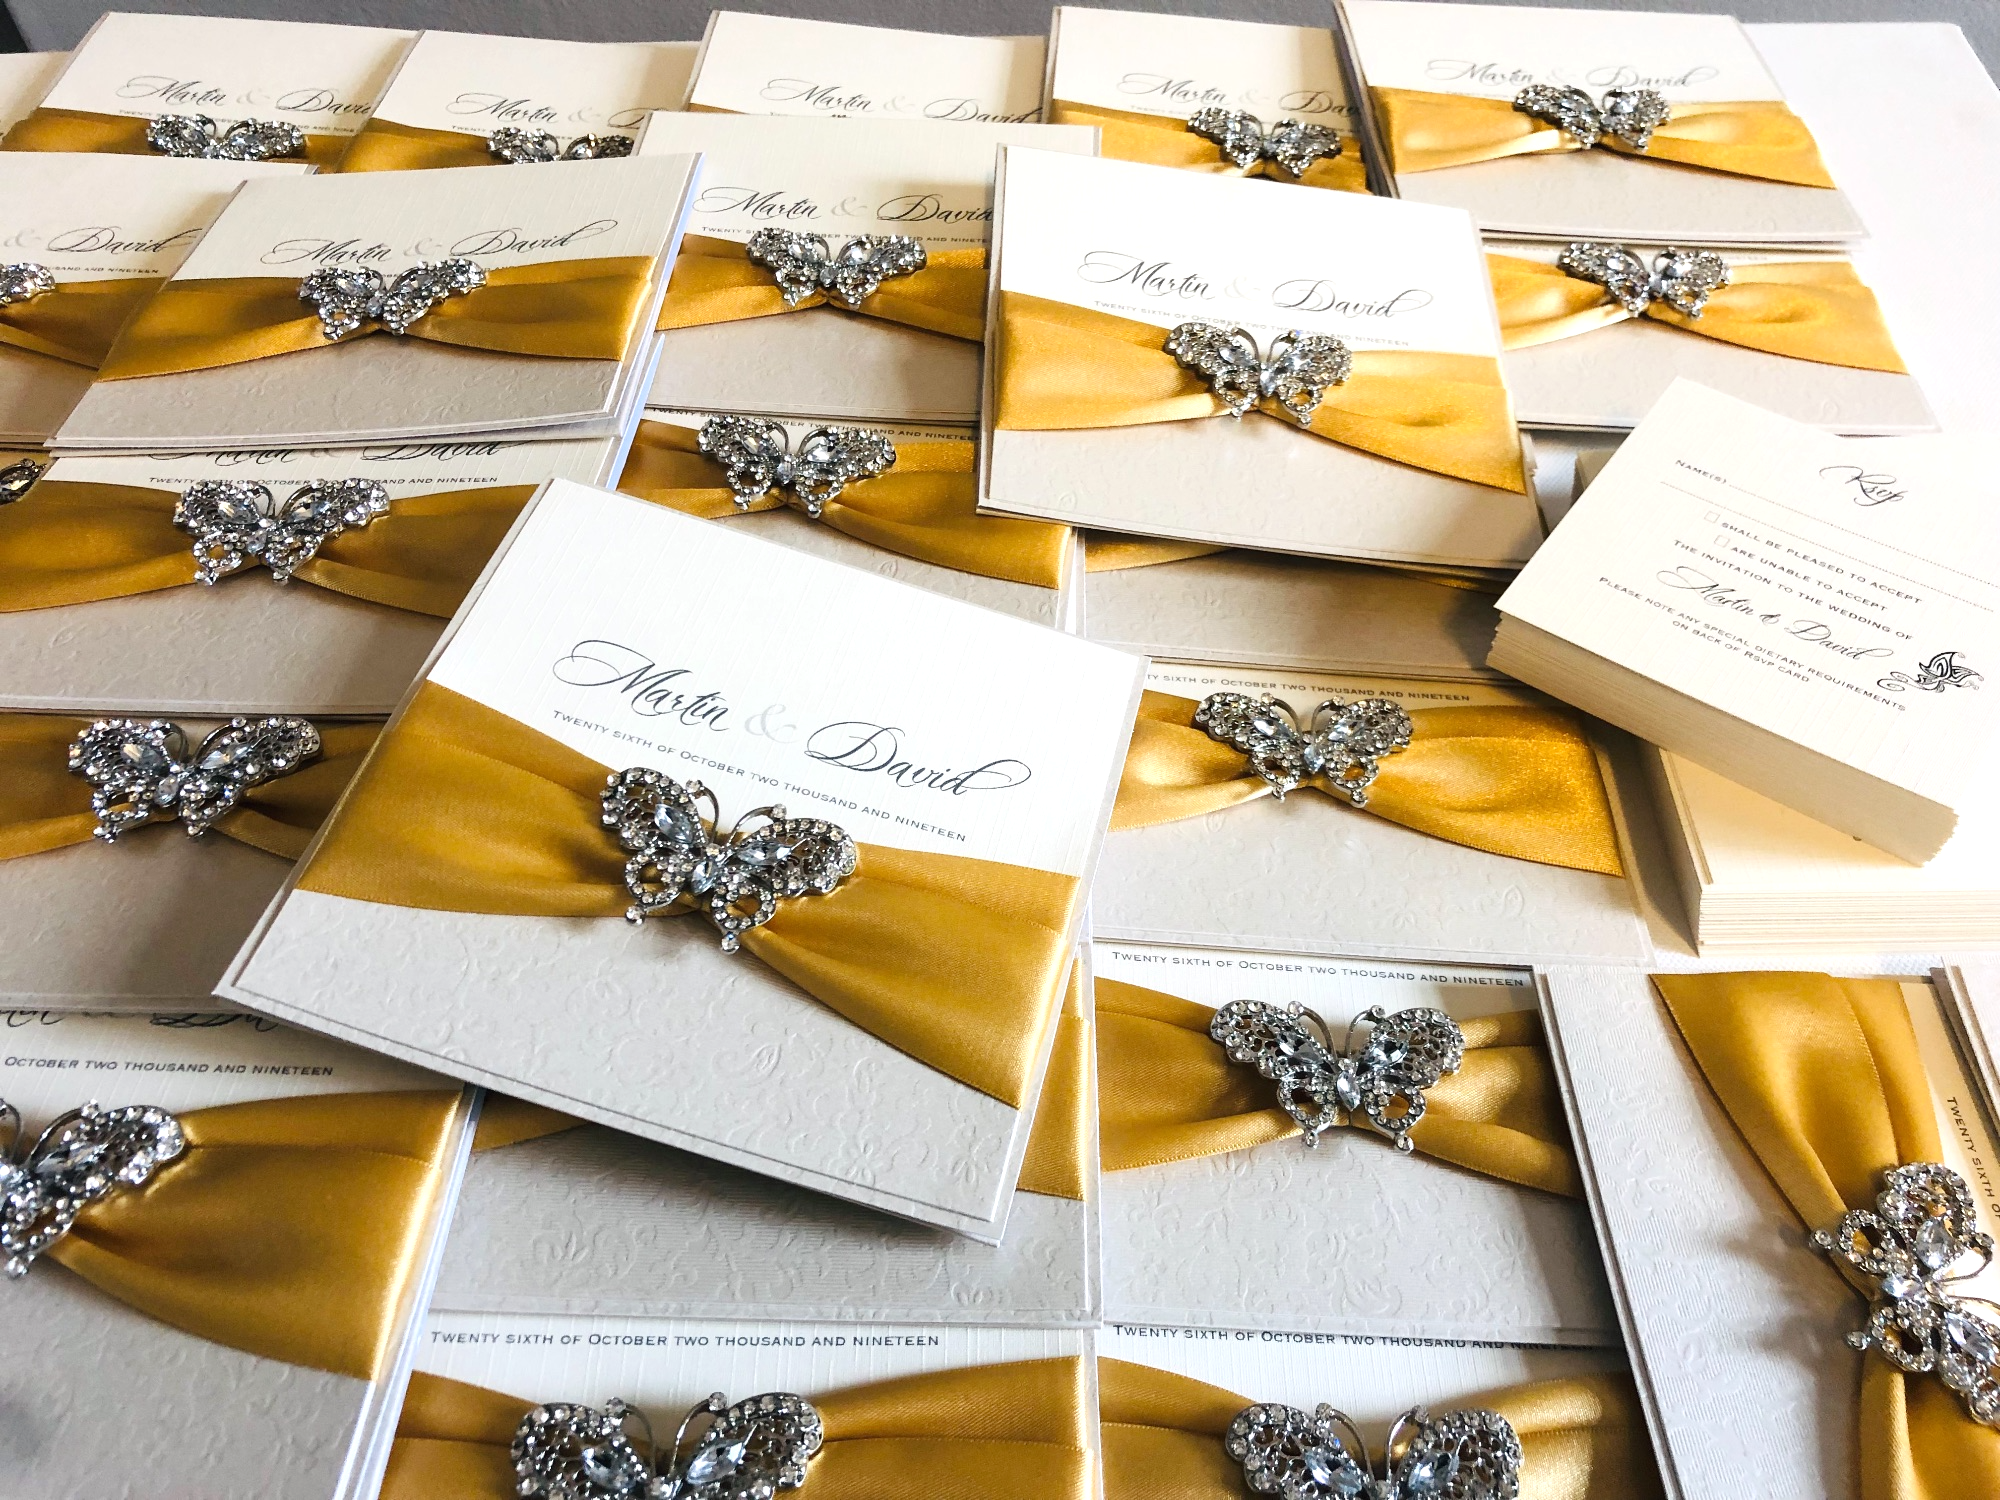 Butterfly Wedding invitations with gold ribbon